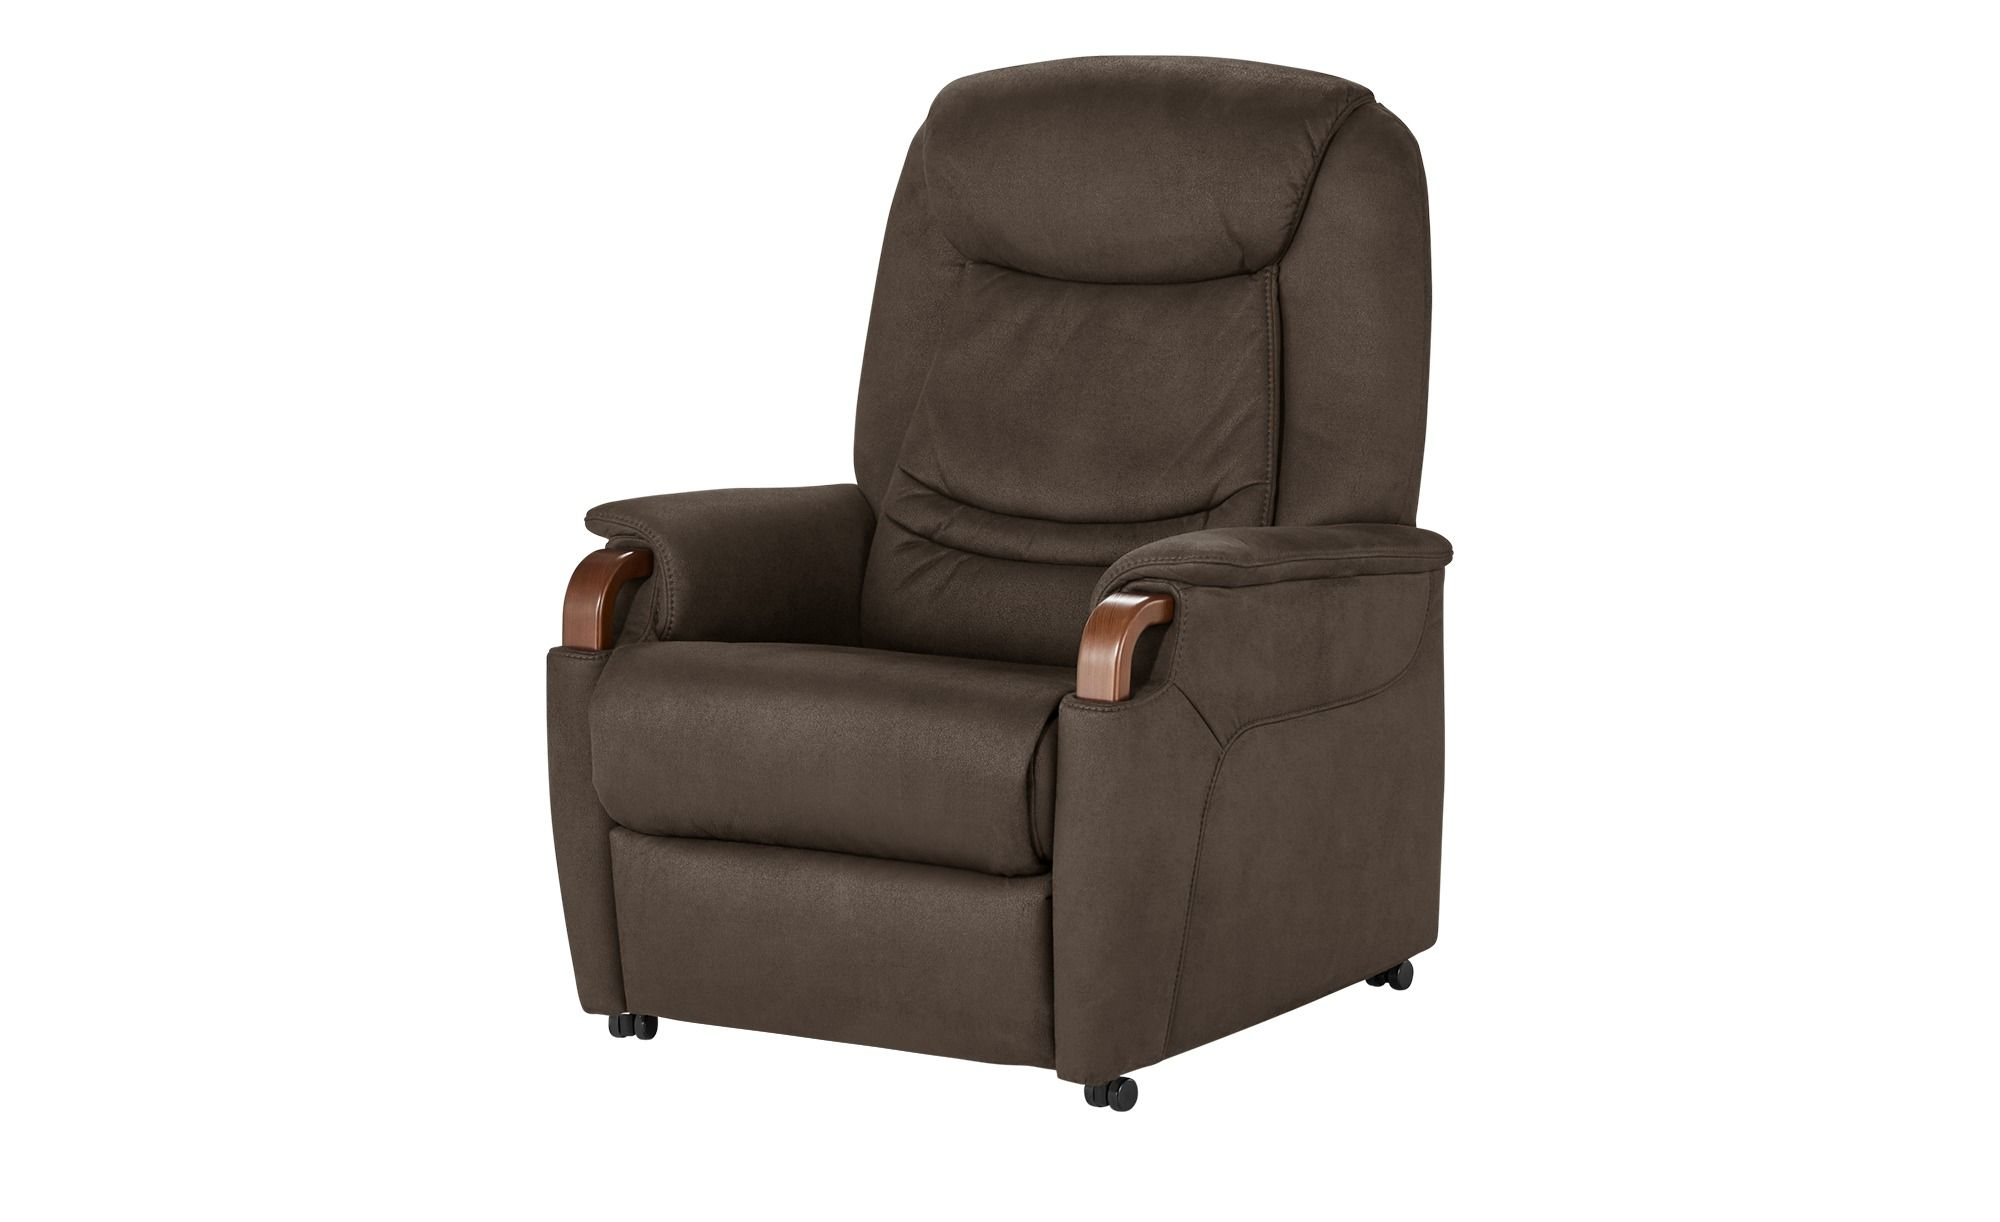 Hukla Relaxsessel Jonas In 2019 Products Sessel Relaxsessel Und